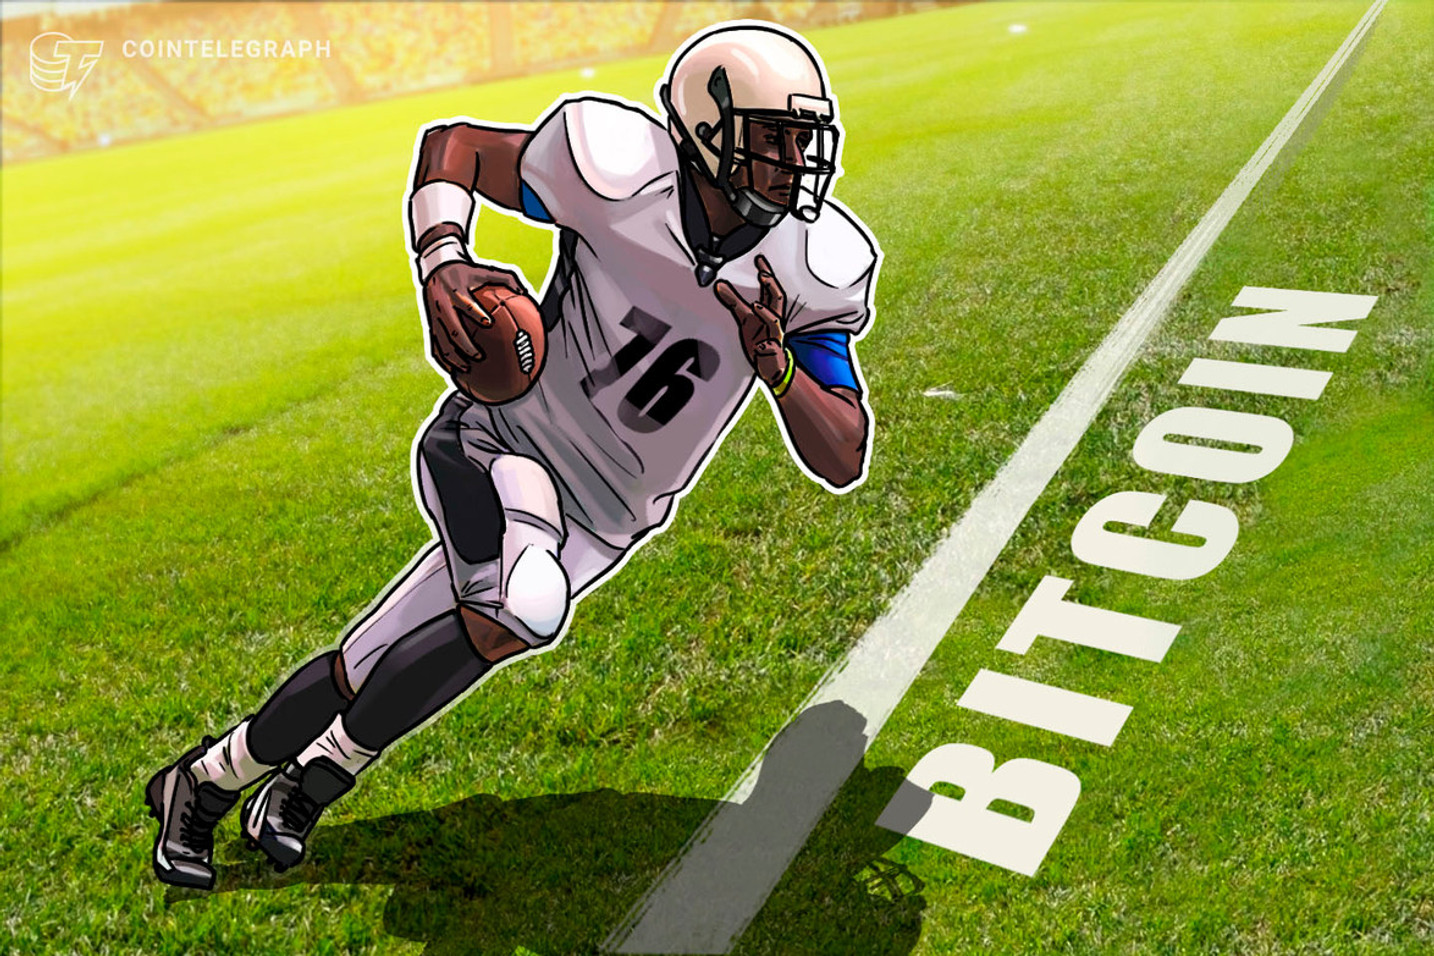 NFL Star Russell Okung Backs Bitcoin Rewards Startup